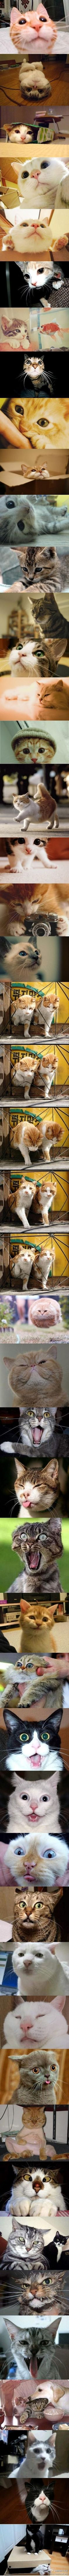 Another 22 Cutest and Lovely Cats Photos   The Recruitment Guru, #1 Recruitment Mentor for Recruiter and Companies